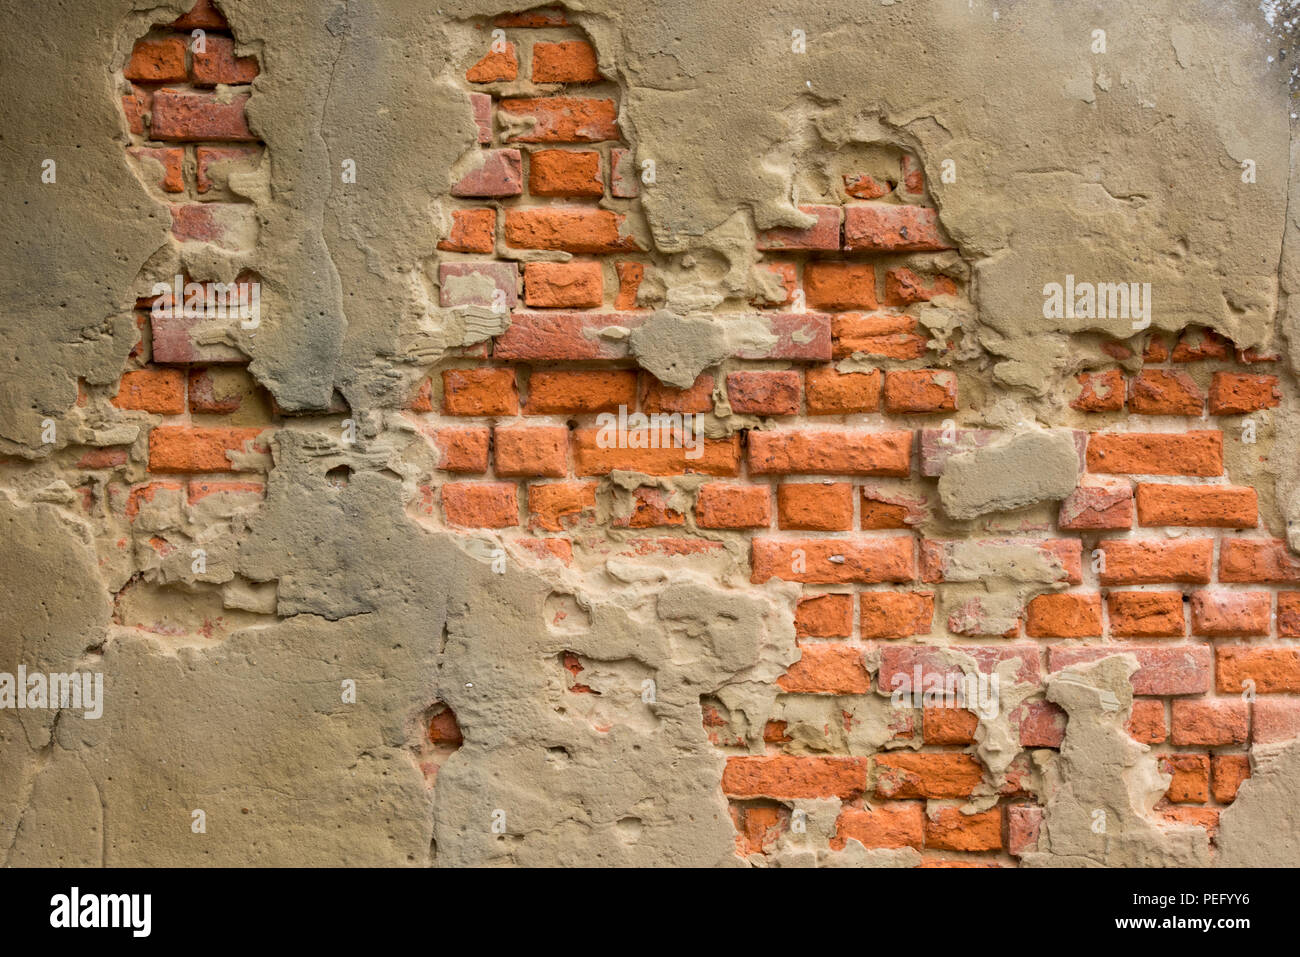 crumbling render or plaster coming off of red brick wall. Building maintenance and plastering or rendering falling off of a wall. - Stock Image